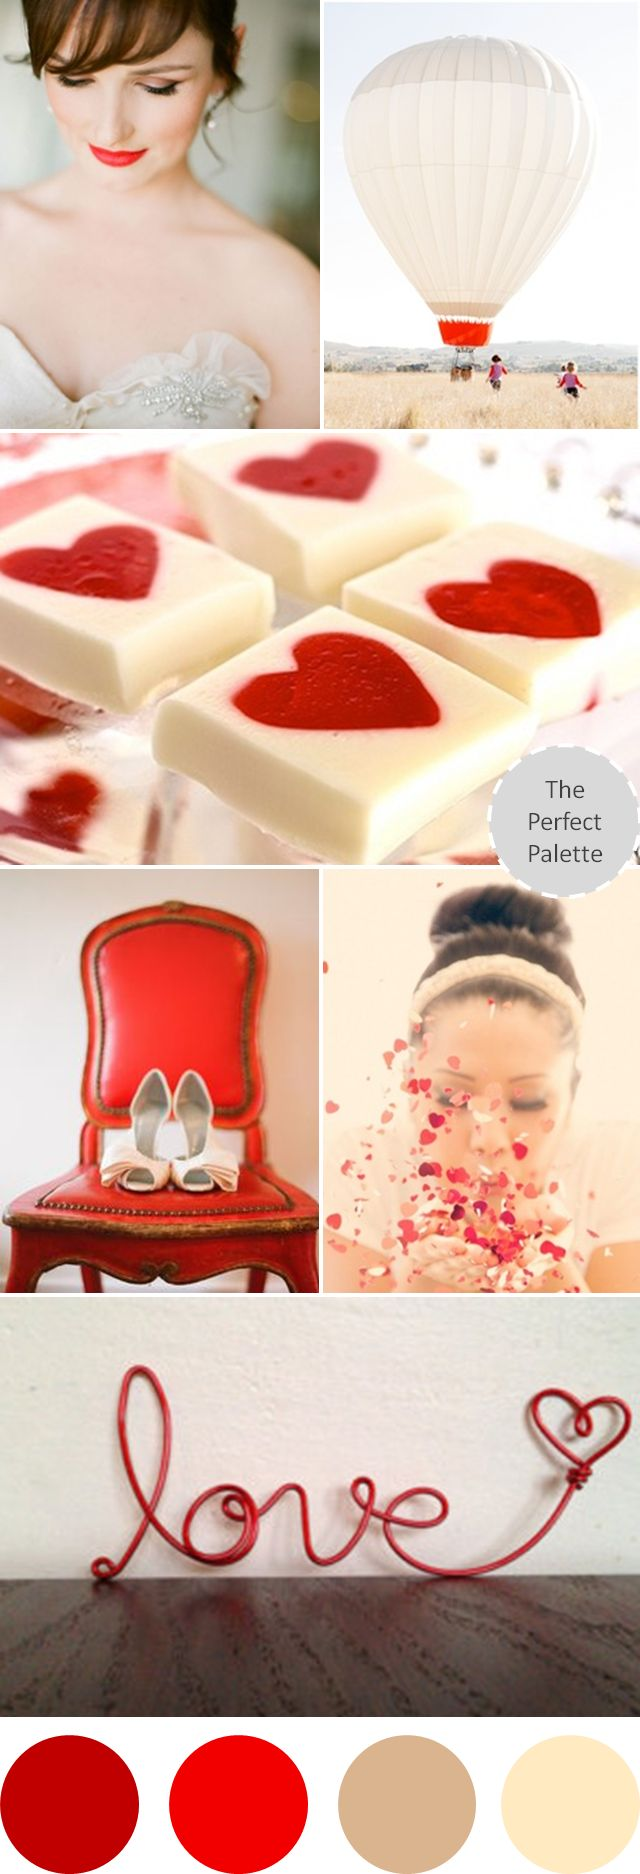 Wedding Colors I Love | Shades of Red, Brown + Ivory http://www.theperfectpalette.com/2013/07/wedding-colors-i-love-shades-of-red.html